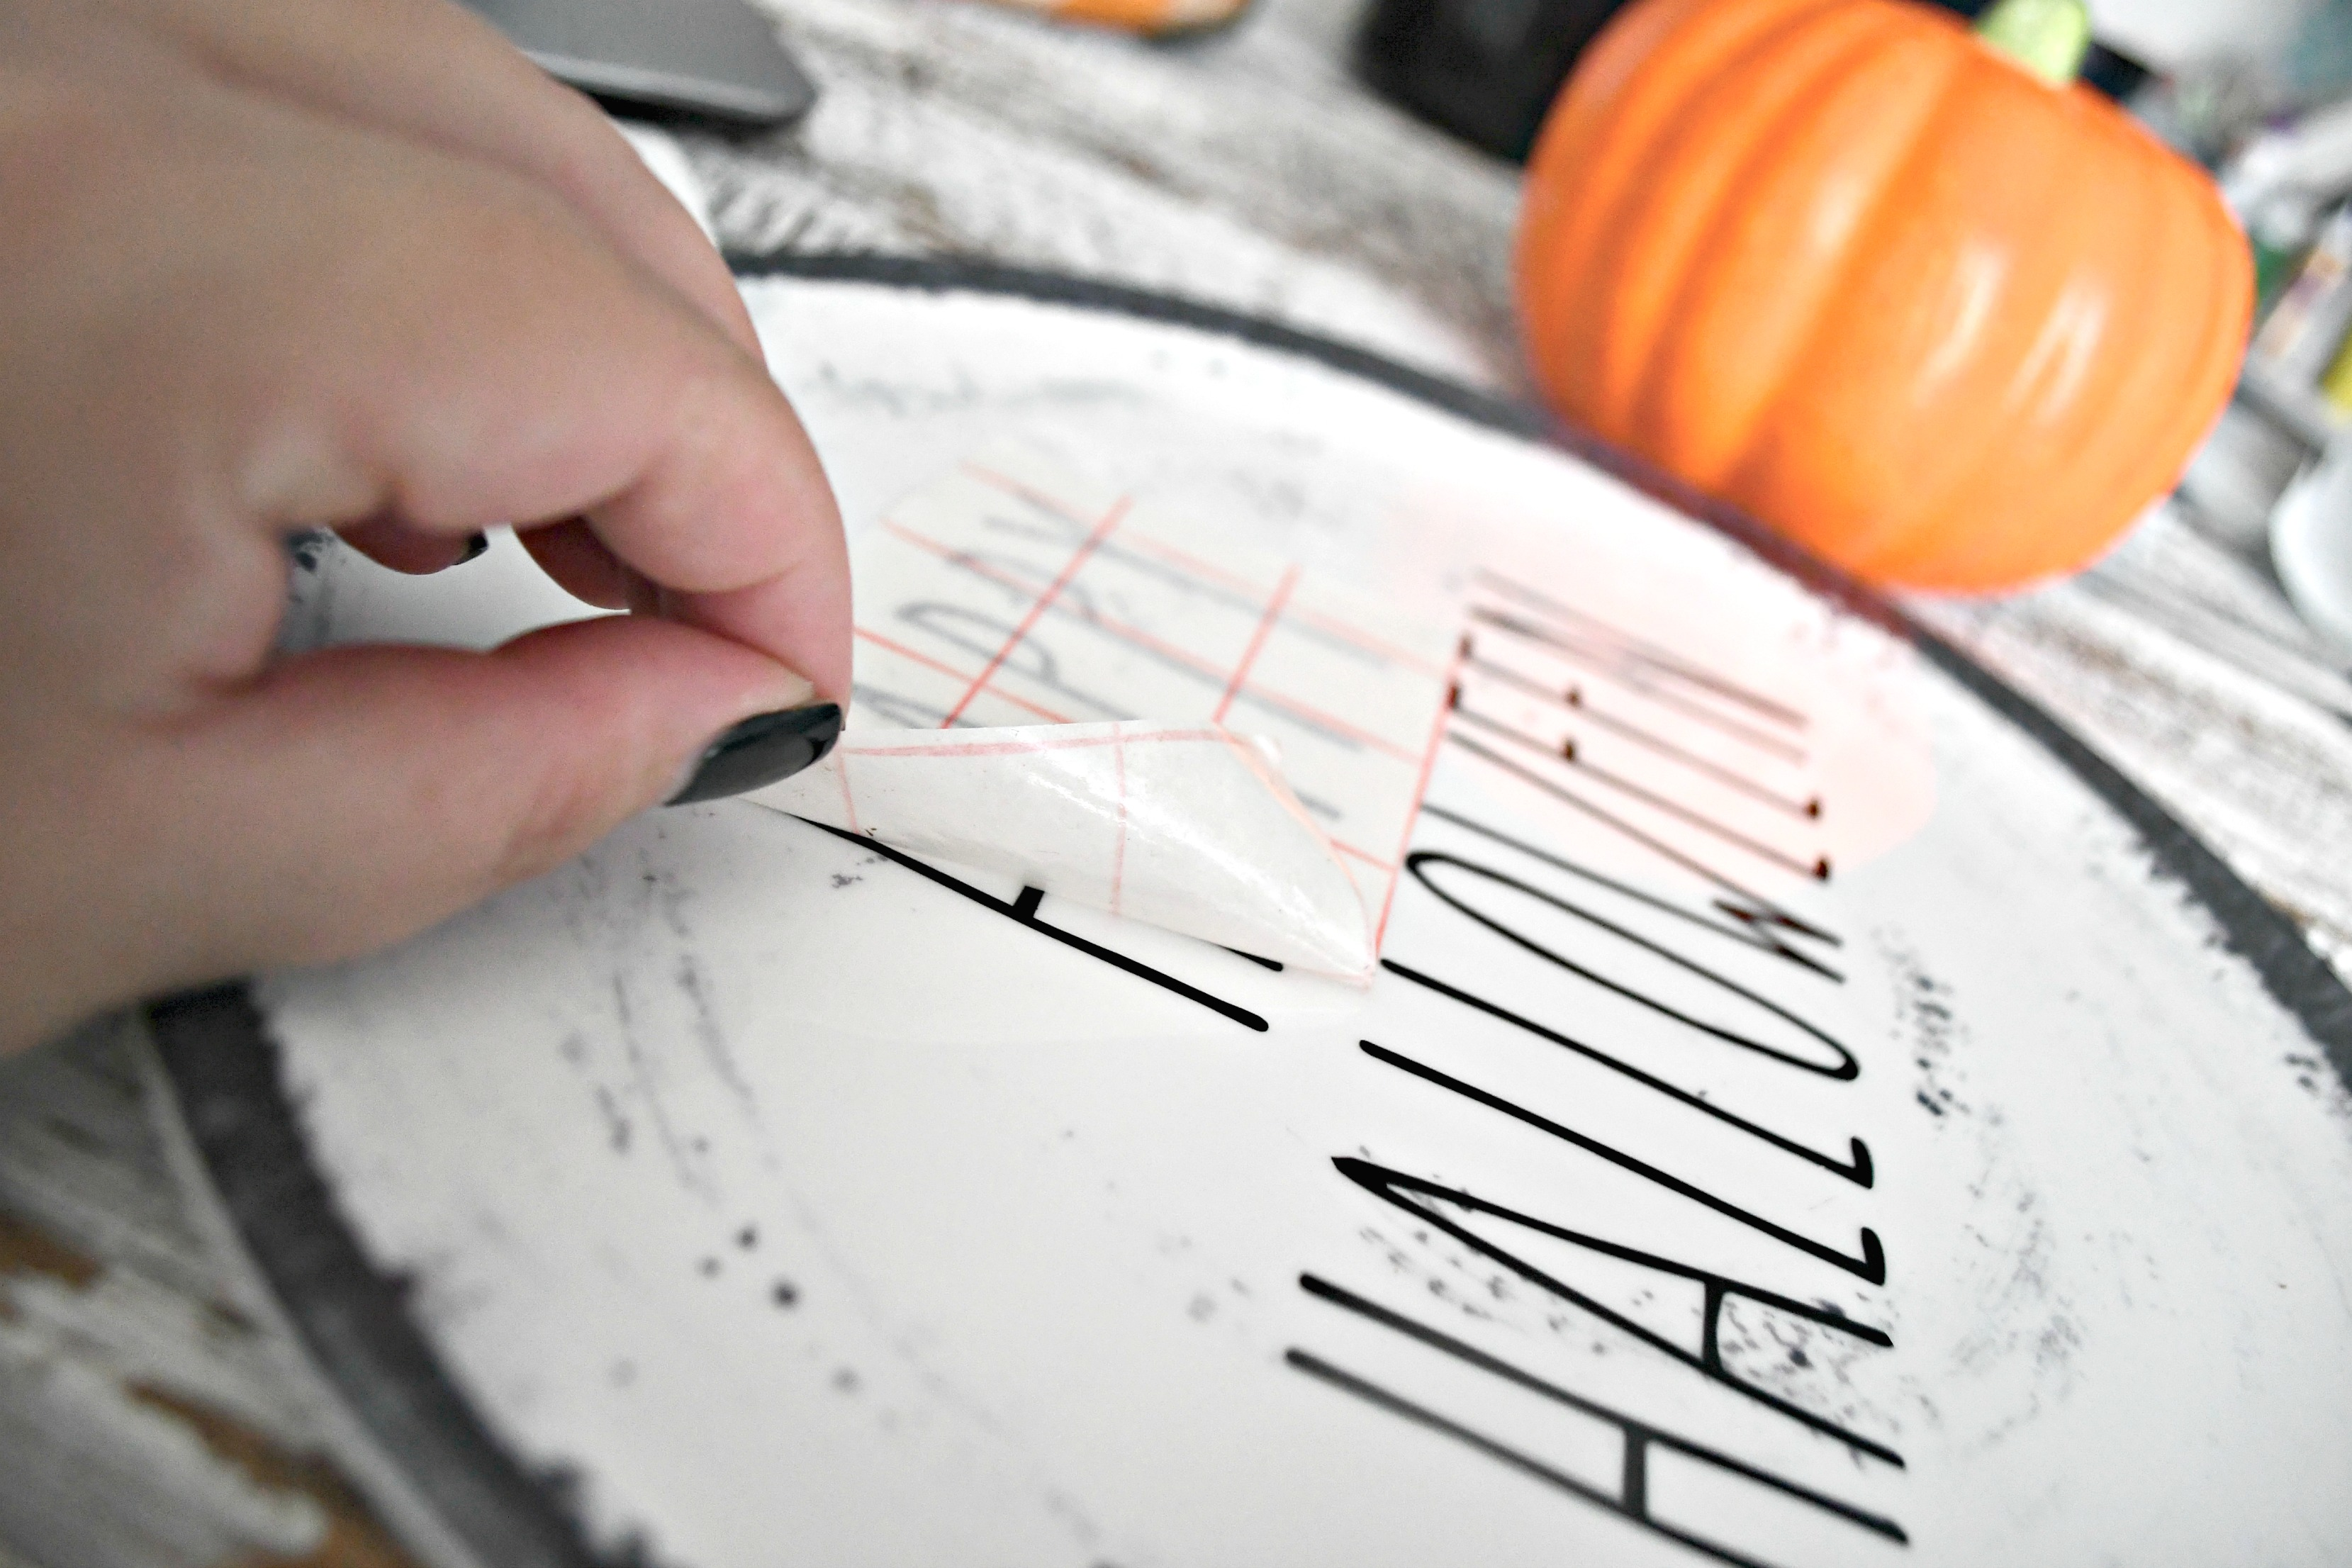 DIY Rae Dunn Inspired Halloween Decor - transferring the lettering to a plate